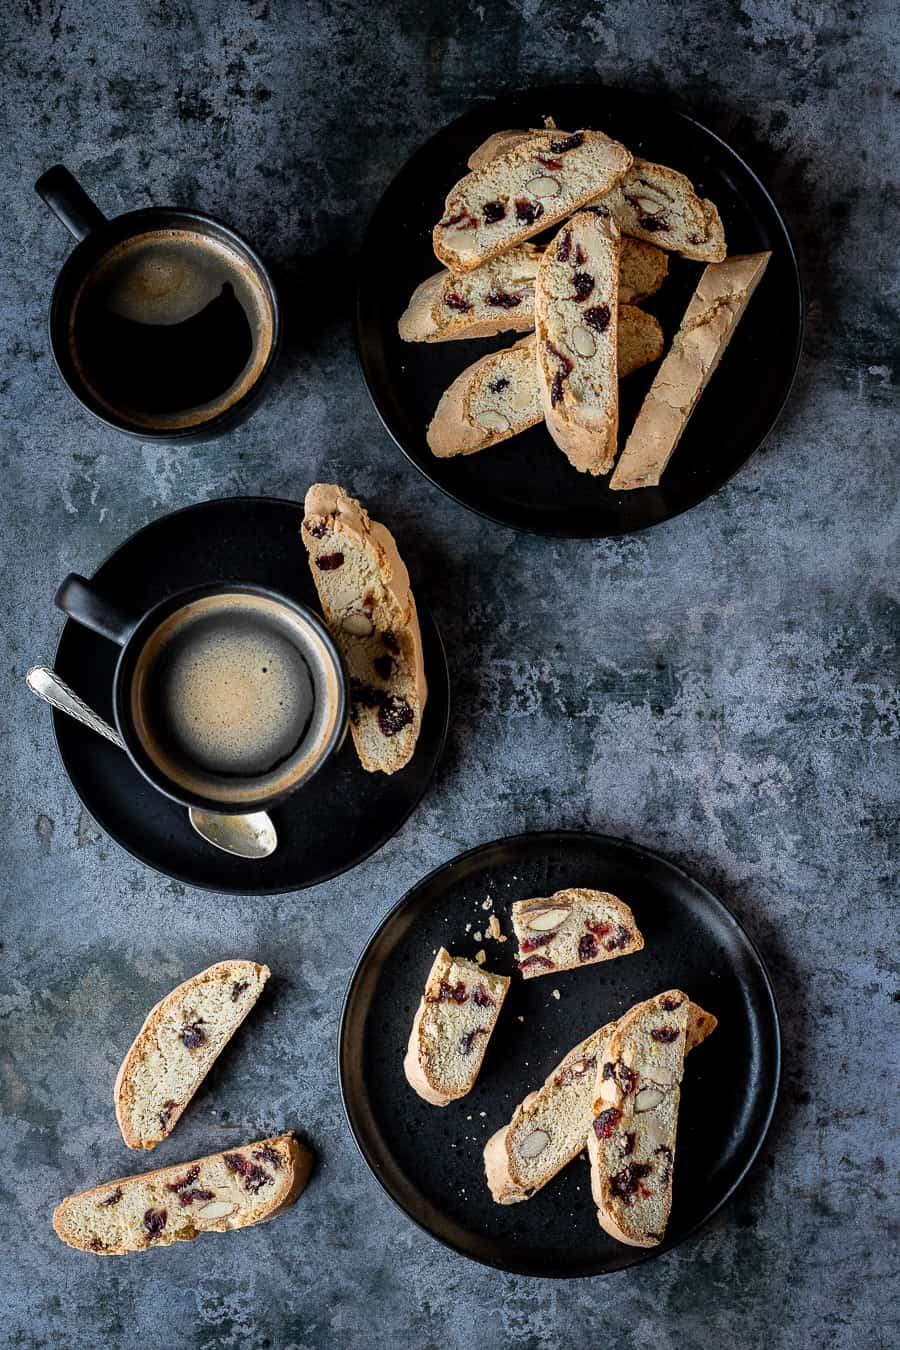 Vegan biscotti on two black plates with two black cups of coffee.